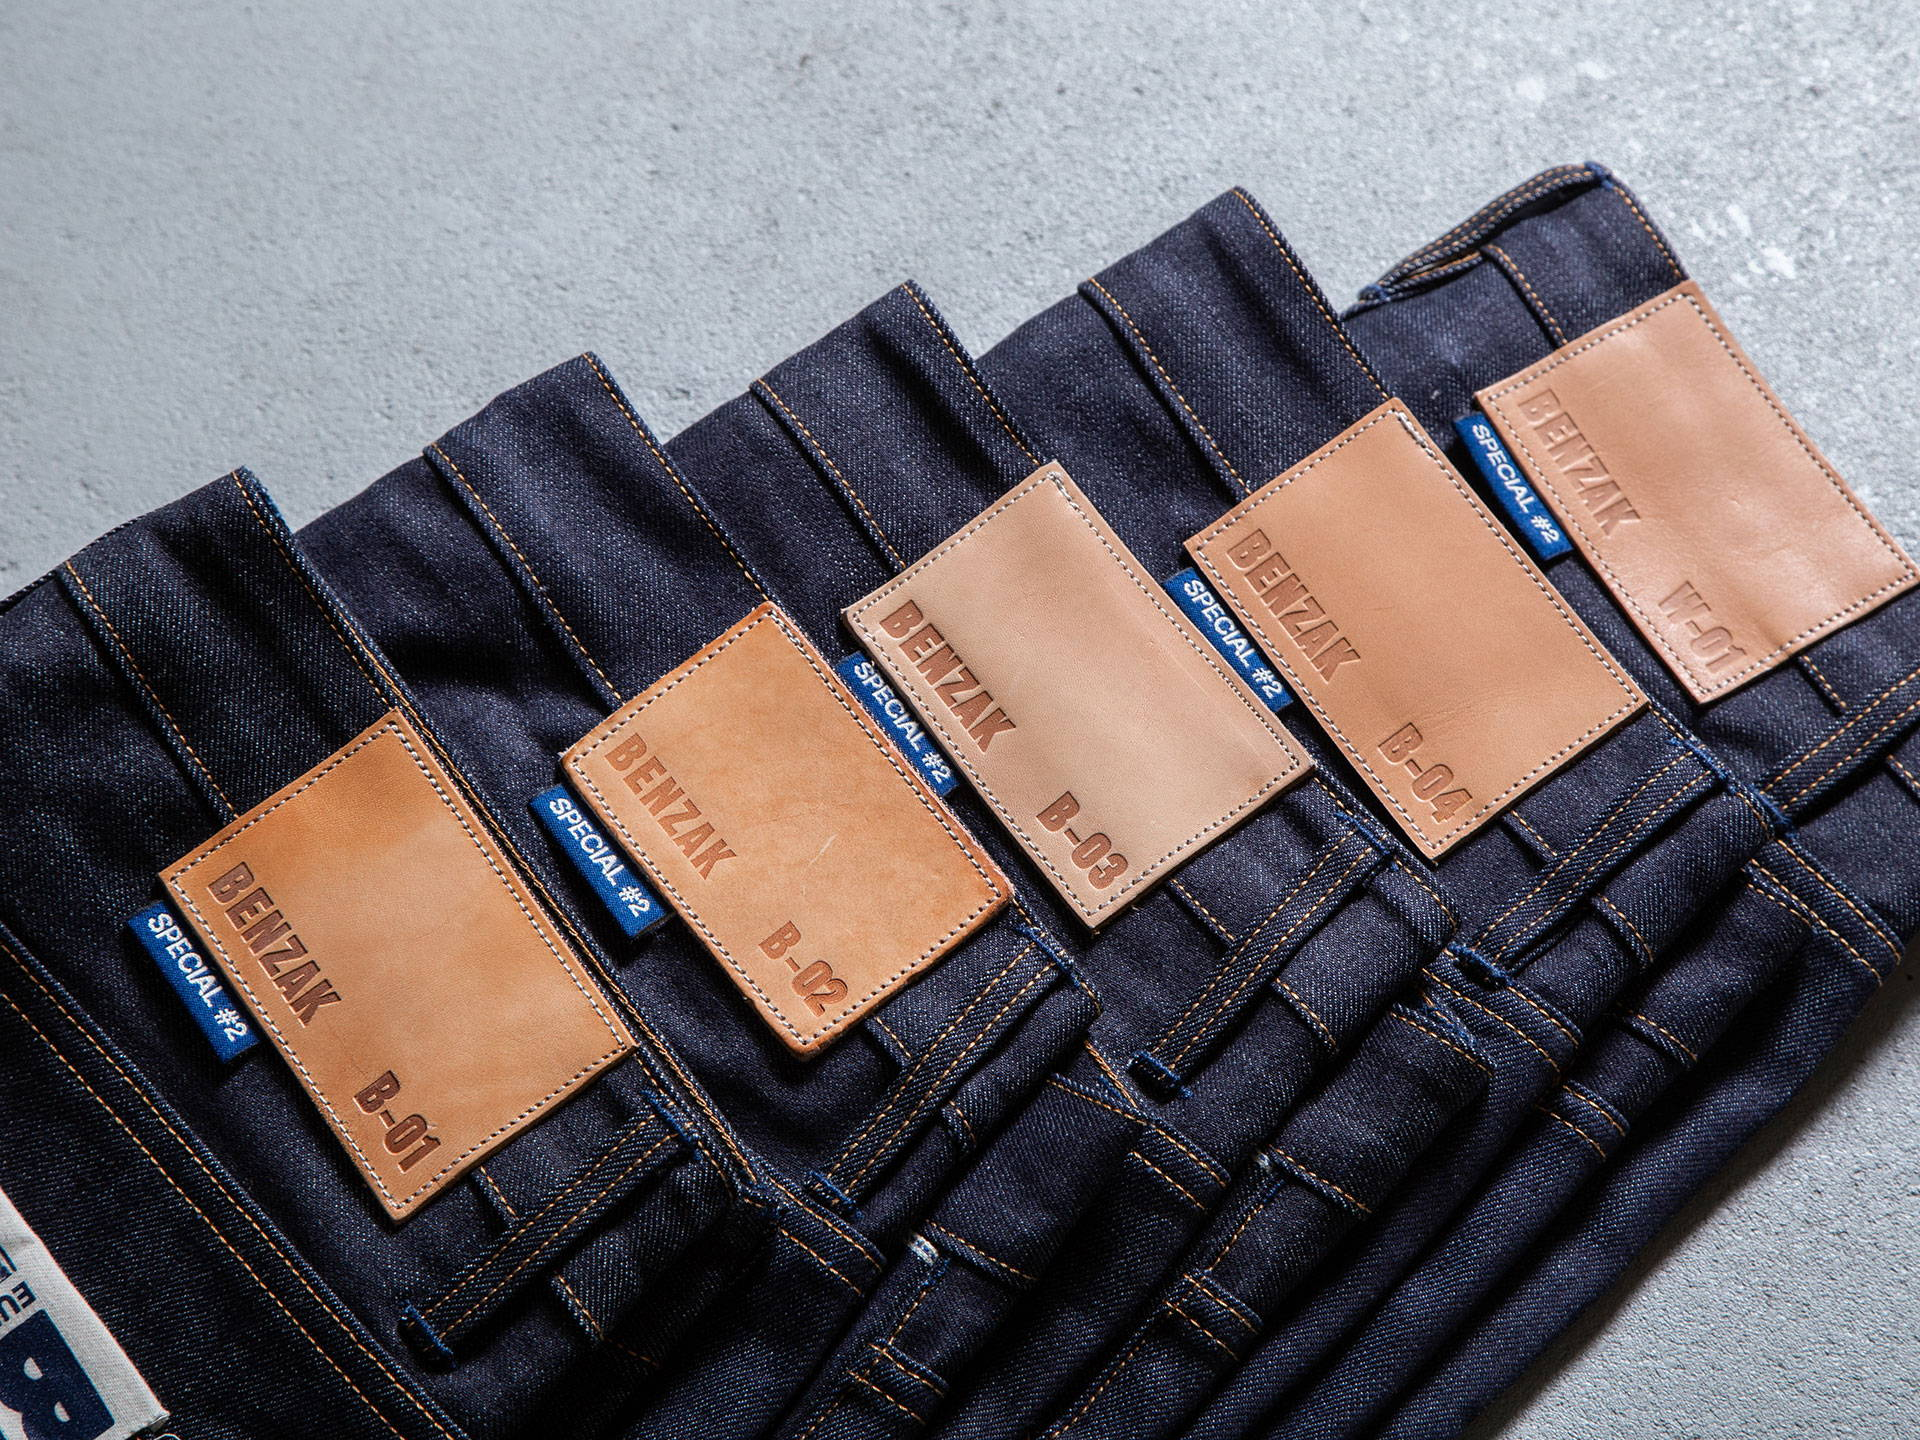 special #2 15 oz. vintage indigo selvedge denim proprietary fabric made in Italy Candiani